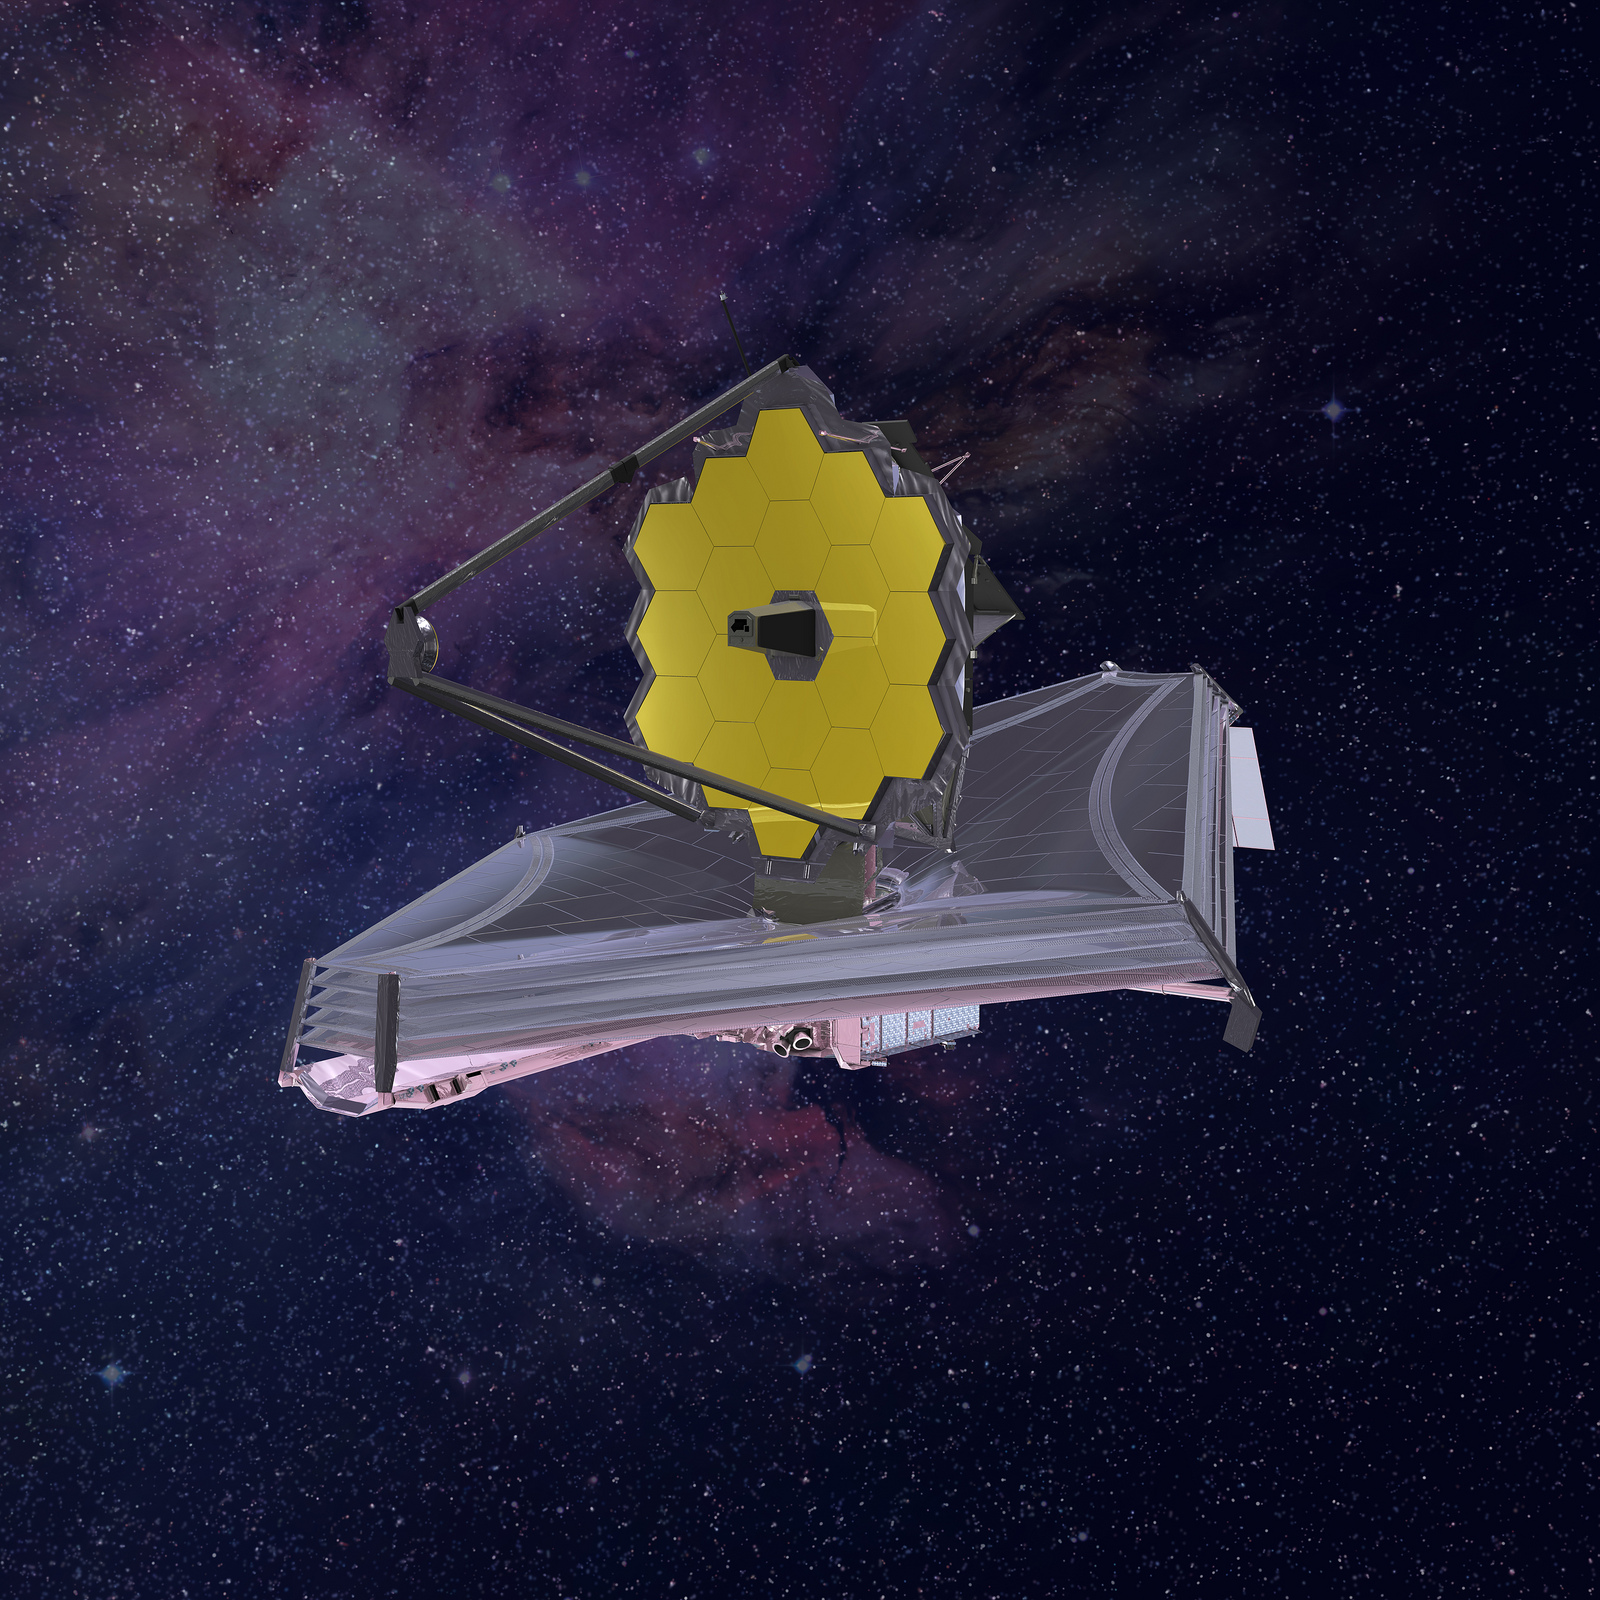 James Webb Space Telescope may be delayed again ...